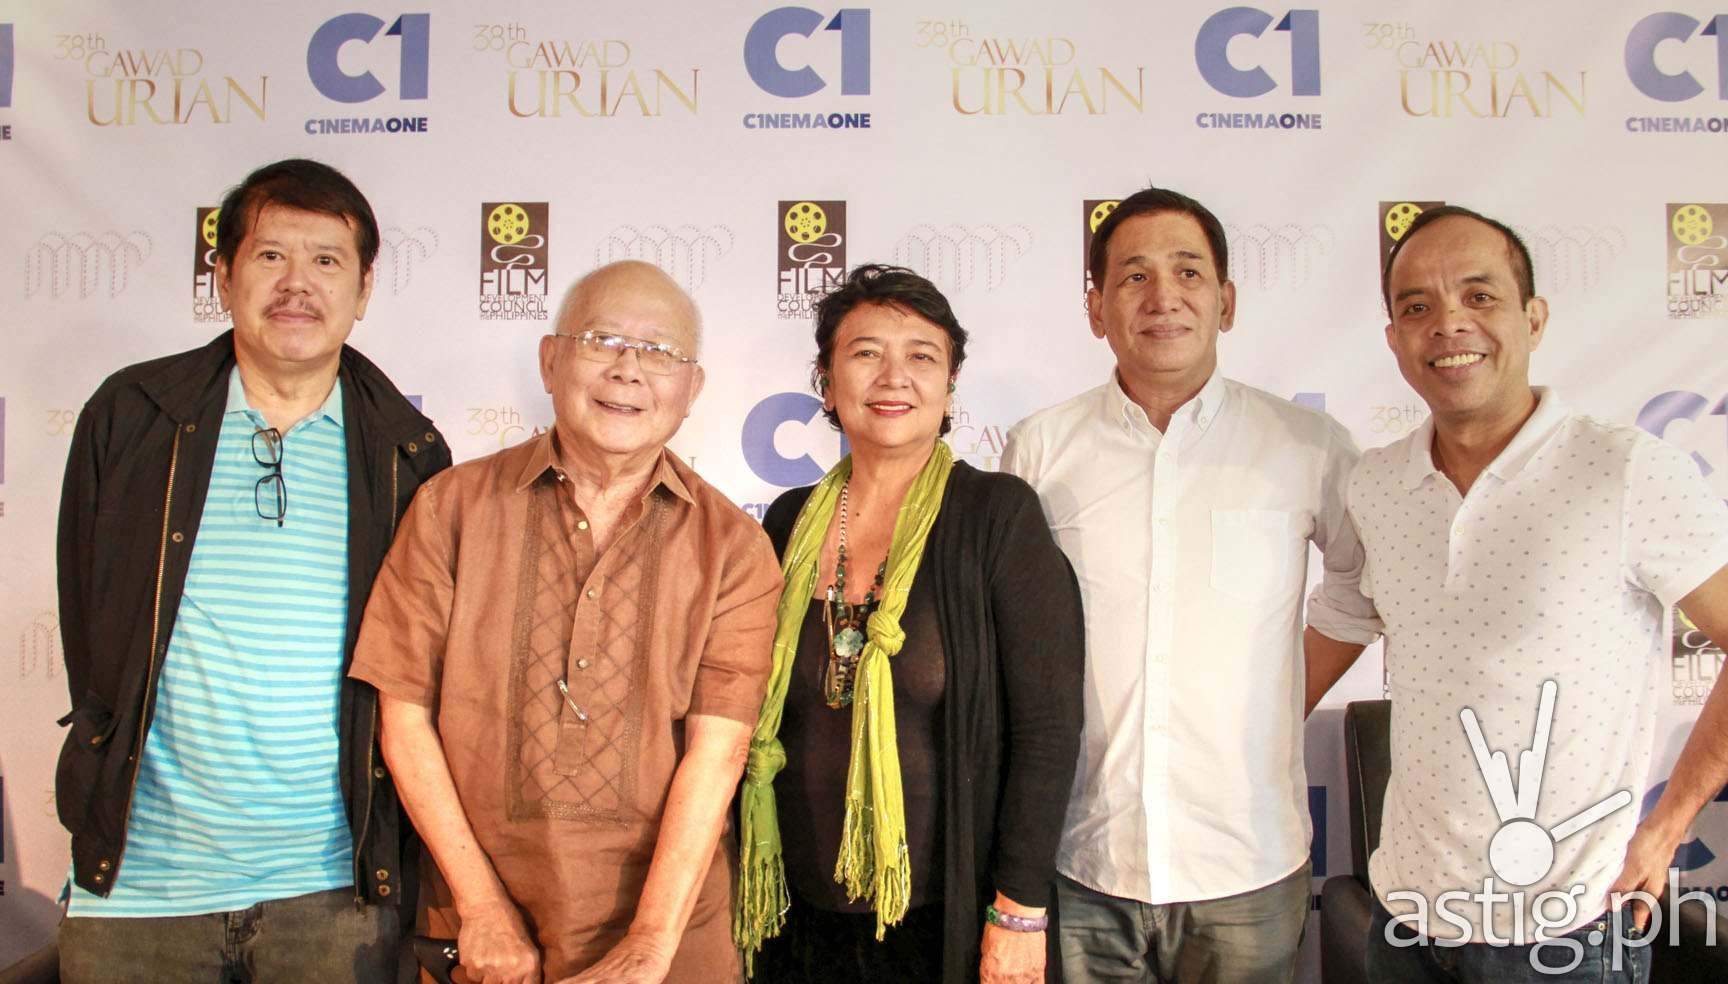 (L-R) Members of the Manunuri ng Pelikulang Pilipino Mario Hernando, Bien Lumbera, Tito Valiente, Grace Alfonso with Cinema One channel head Ronald Arguelles